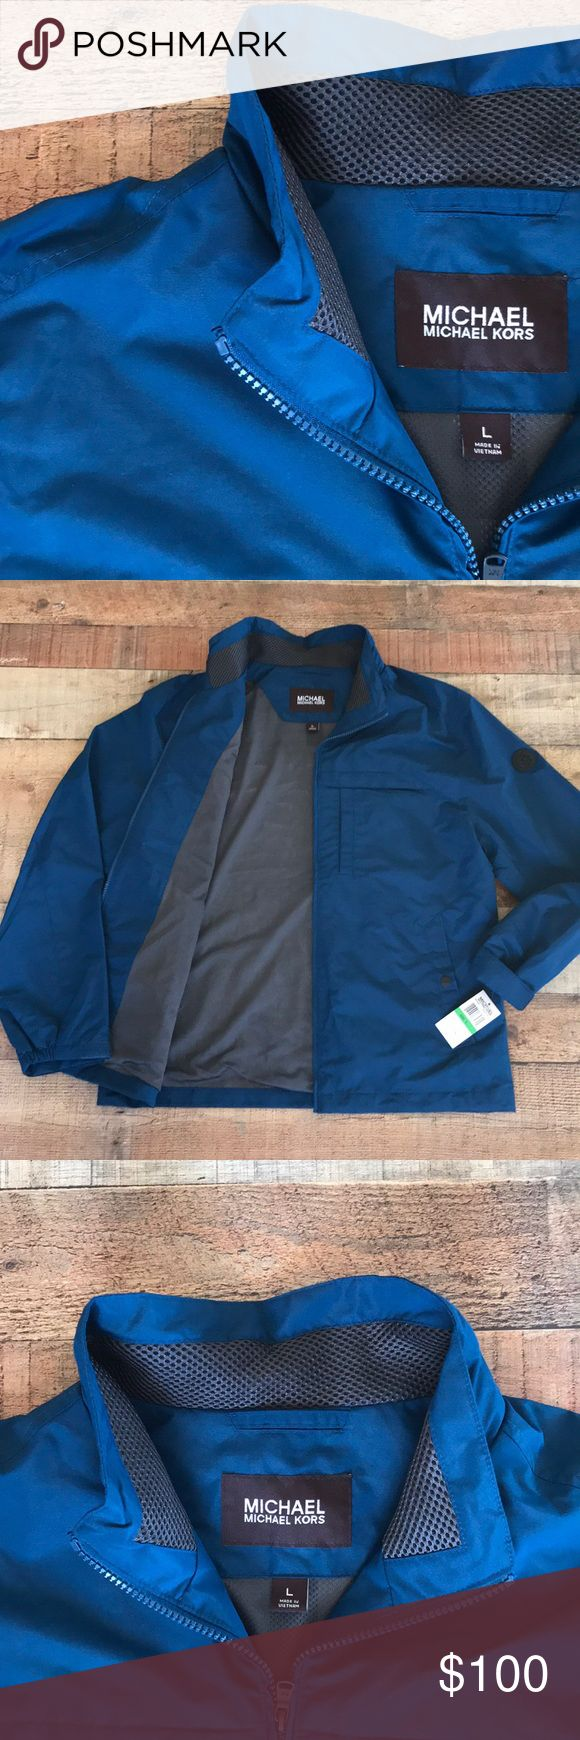 Mens Michael Kors Pacific Blue Jacket New with tags - never worn   Windbreaker paternal  100% Polyester Color- pacific blue  Mesh Polyester lining  Draw strings at bottom to tighten if necessary  2 front chest pockets 2 front side pockets  Functional zipper MICHAEL Michael Kors Jackets & Coats Windbreakers